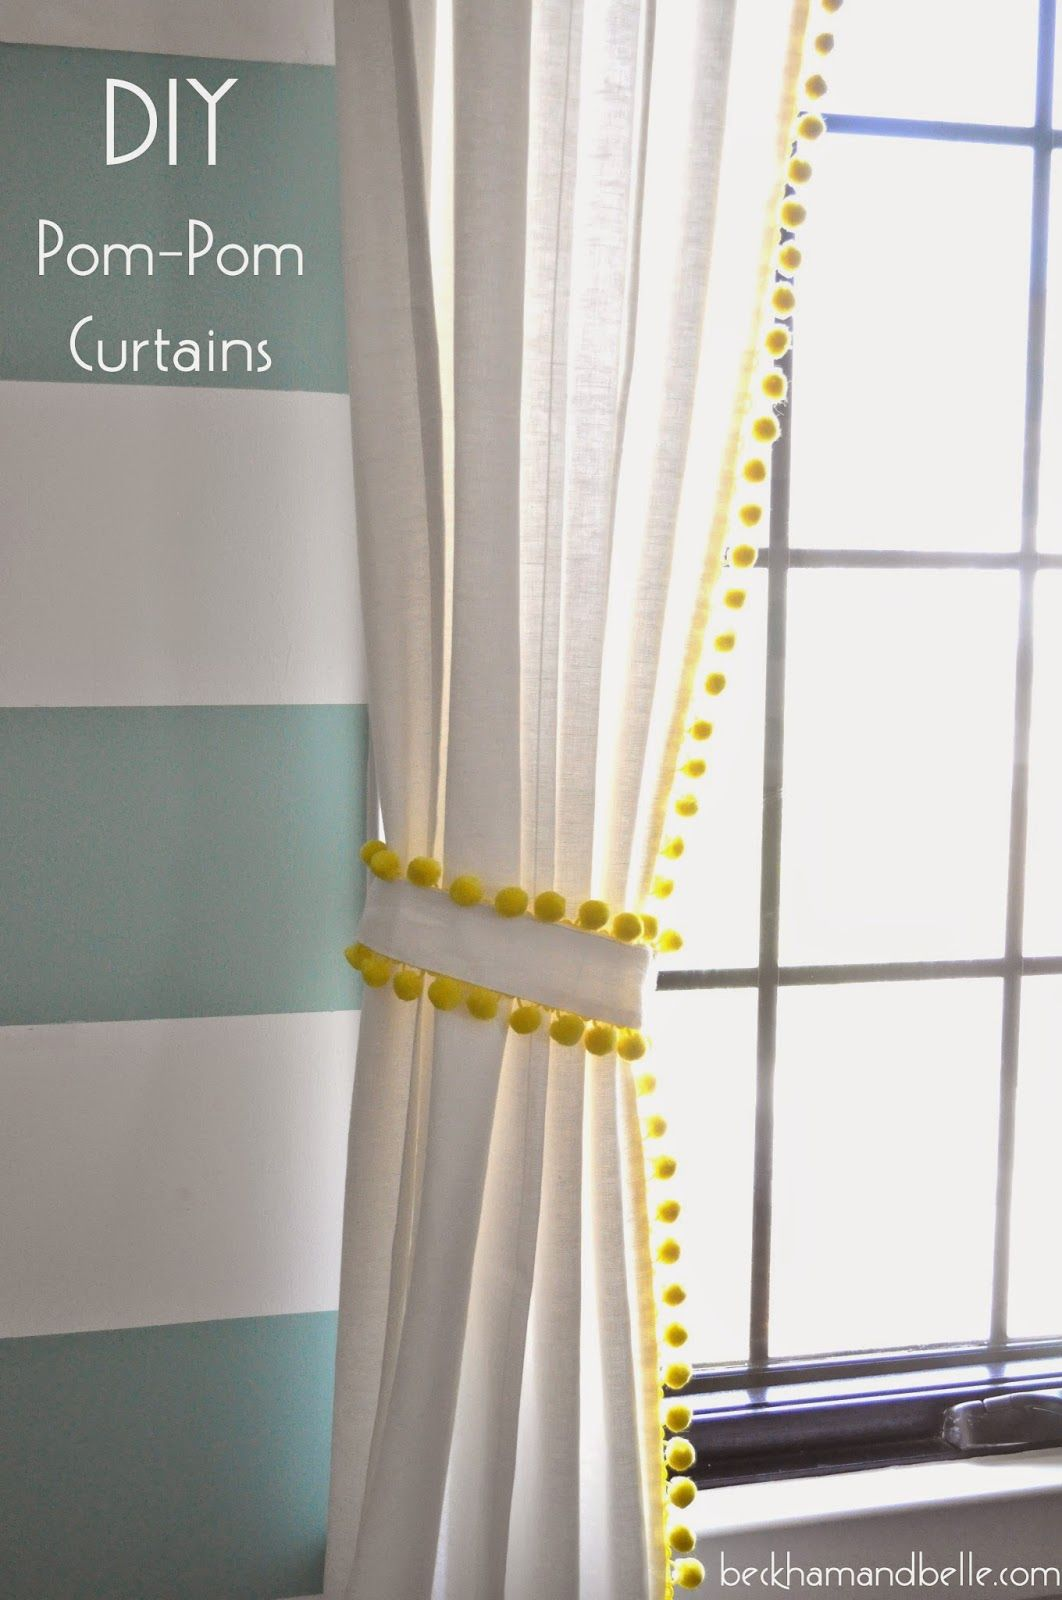 Diy 15 Pom Pom Trim Curtains Kids Room Curtains Diy Curtains